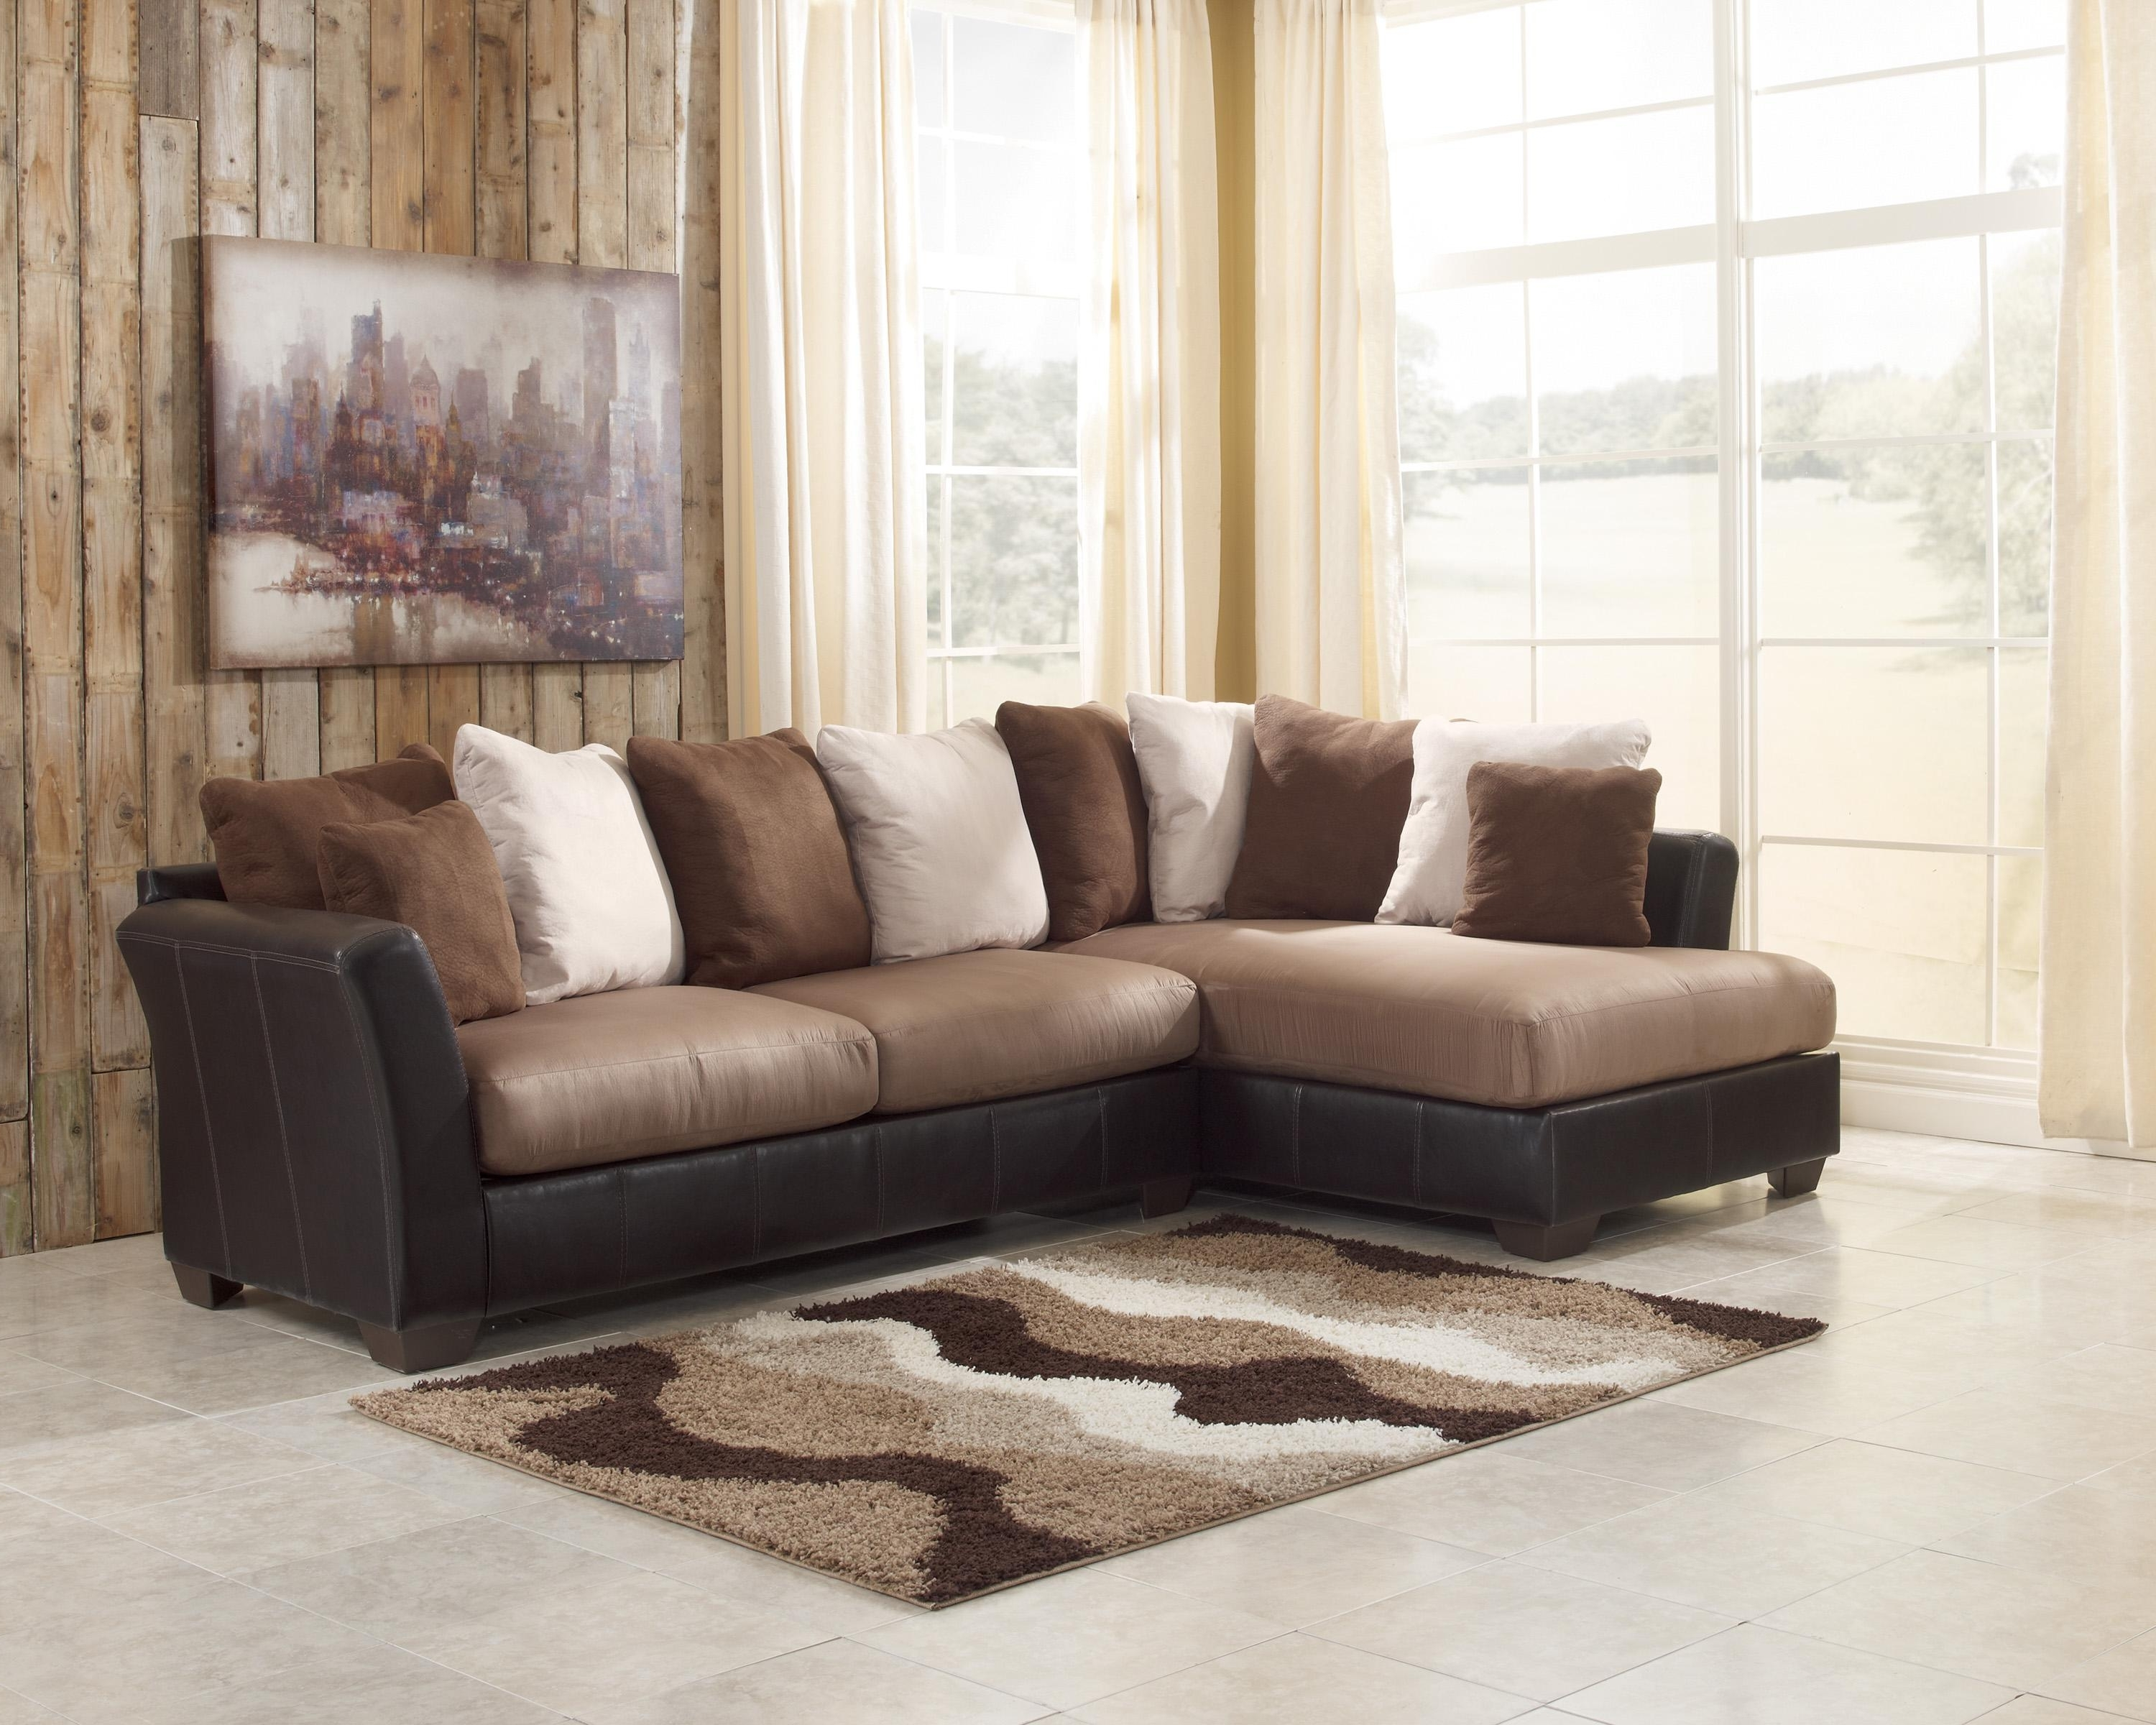 Trendy Sectional Sofas With 2 Chaises Regarding Cool Fancy 2 Piece Sectional Sofa With Chaise 61 For Your Home (View 10 of 20)